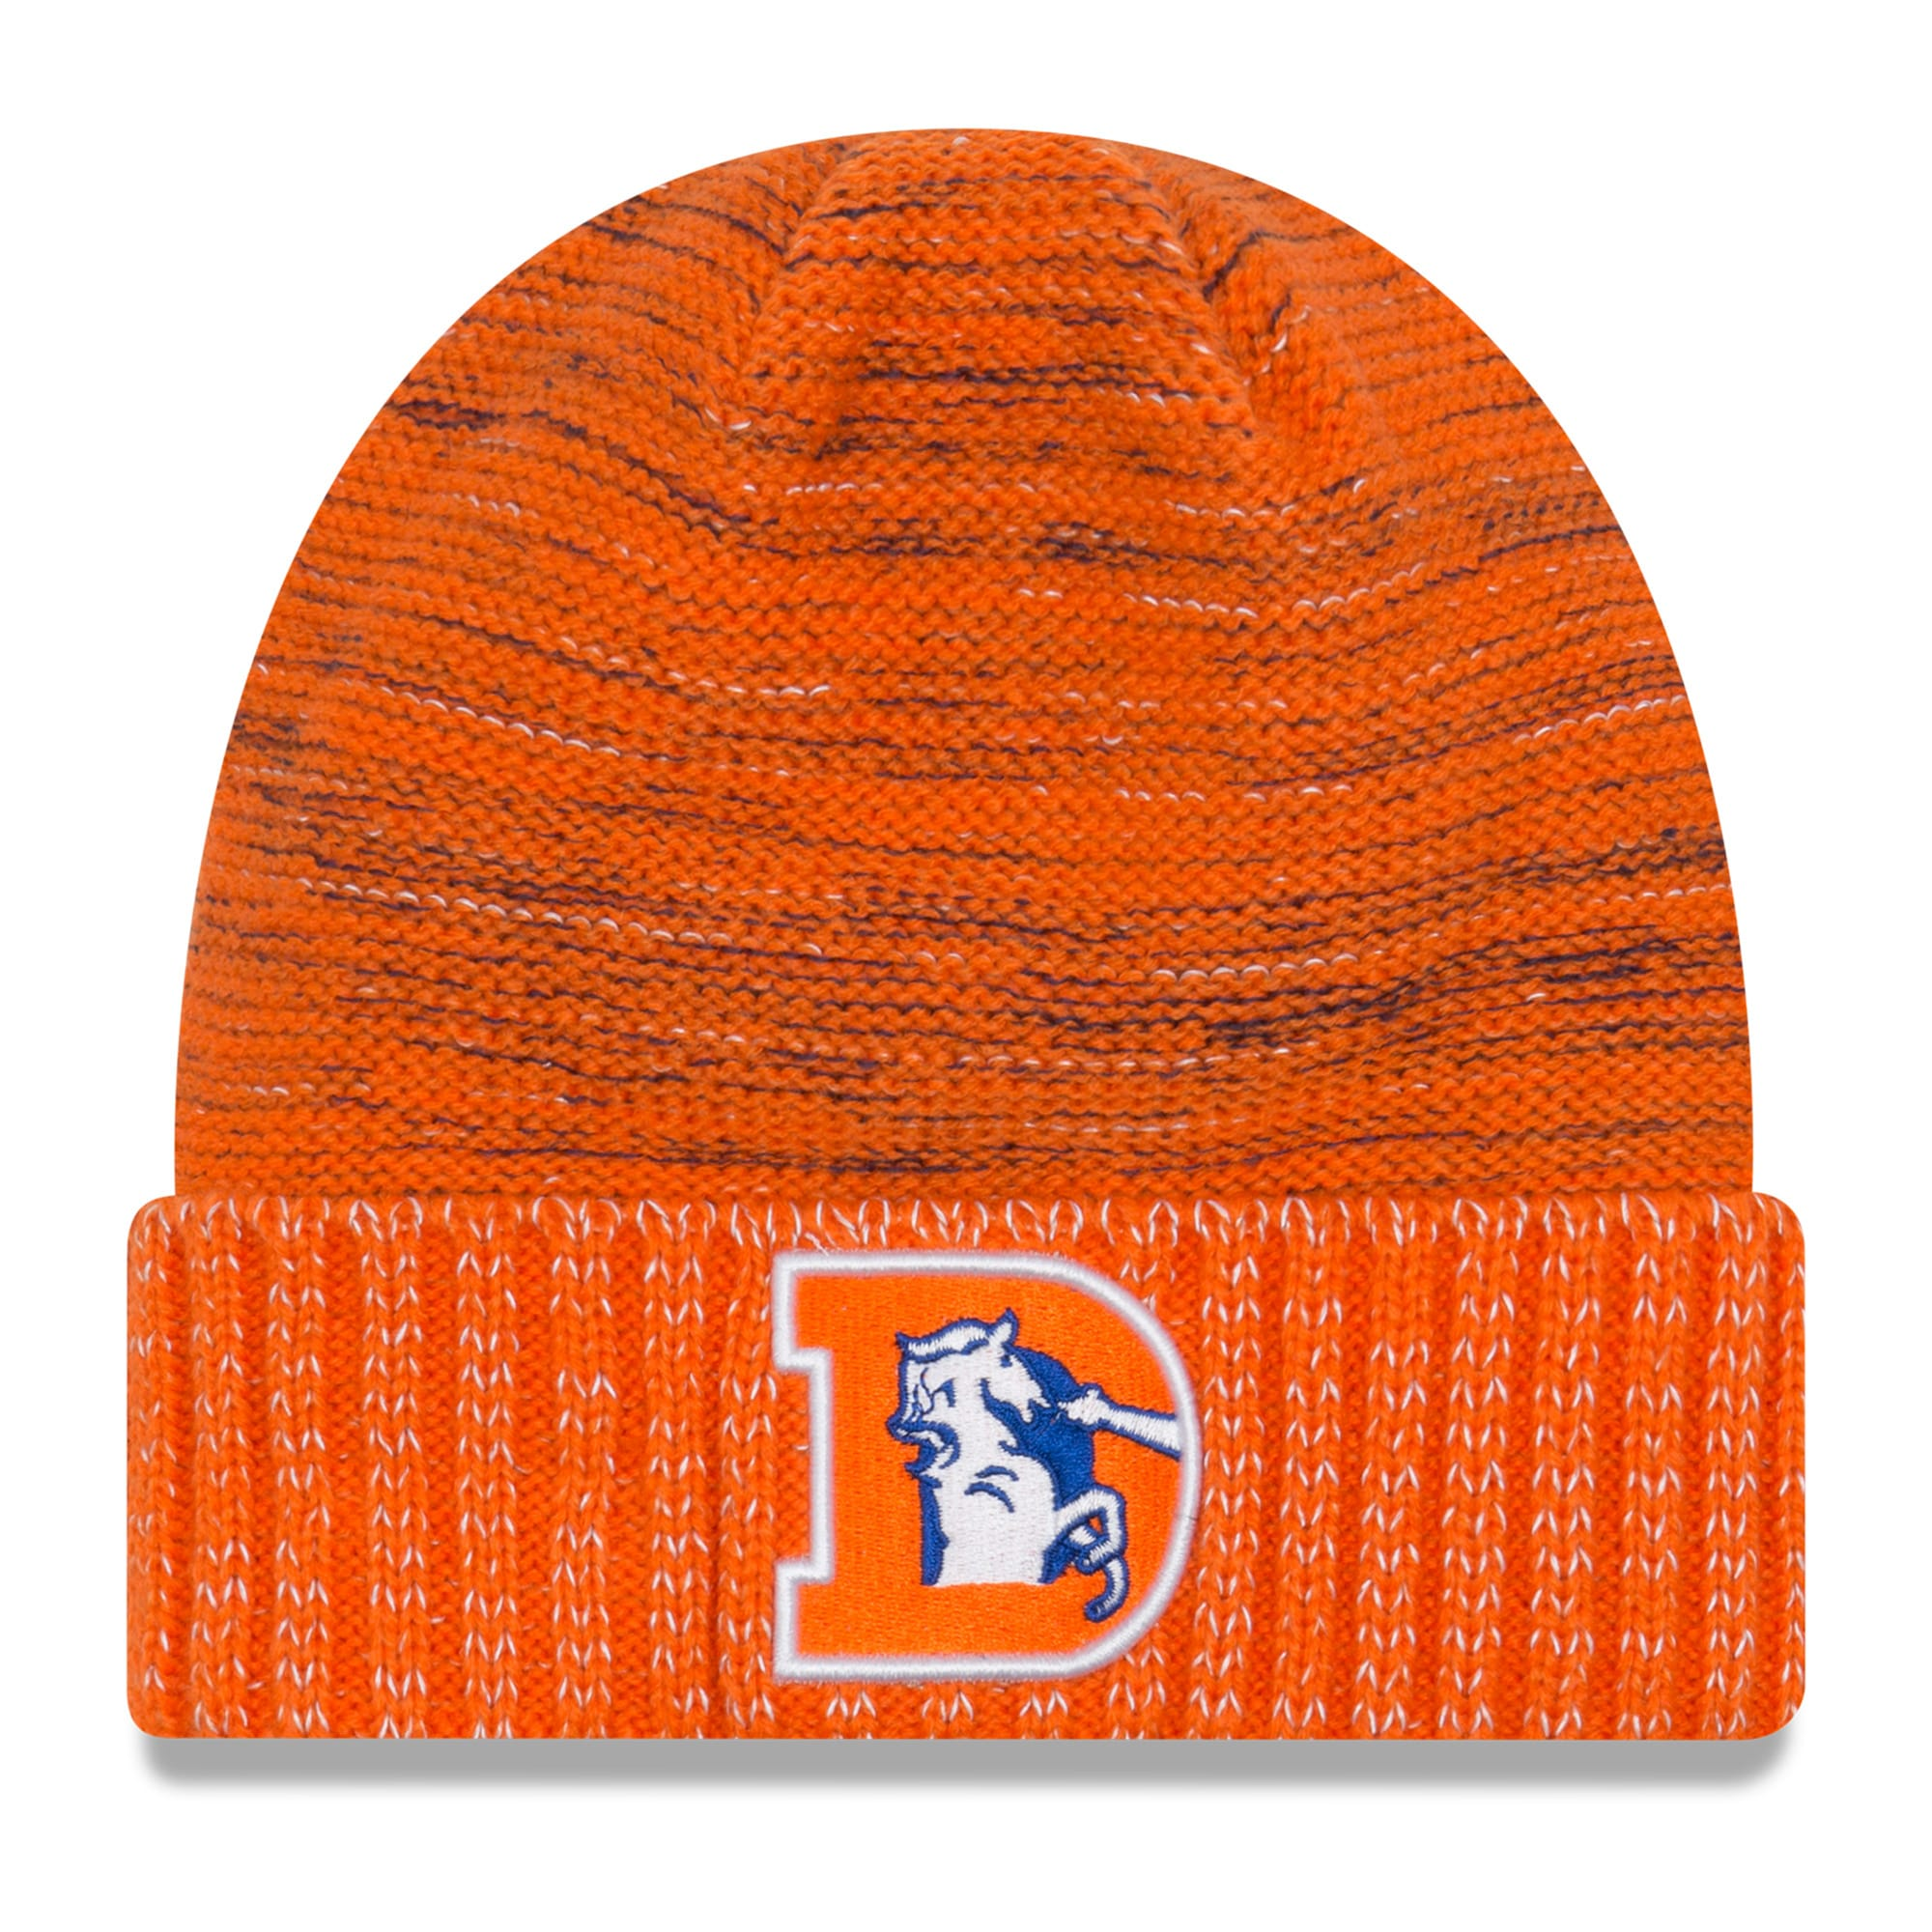 Denver Broncos New Era 2017 Color Rush Knit Hat - Orange